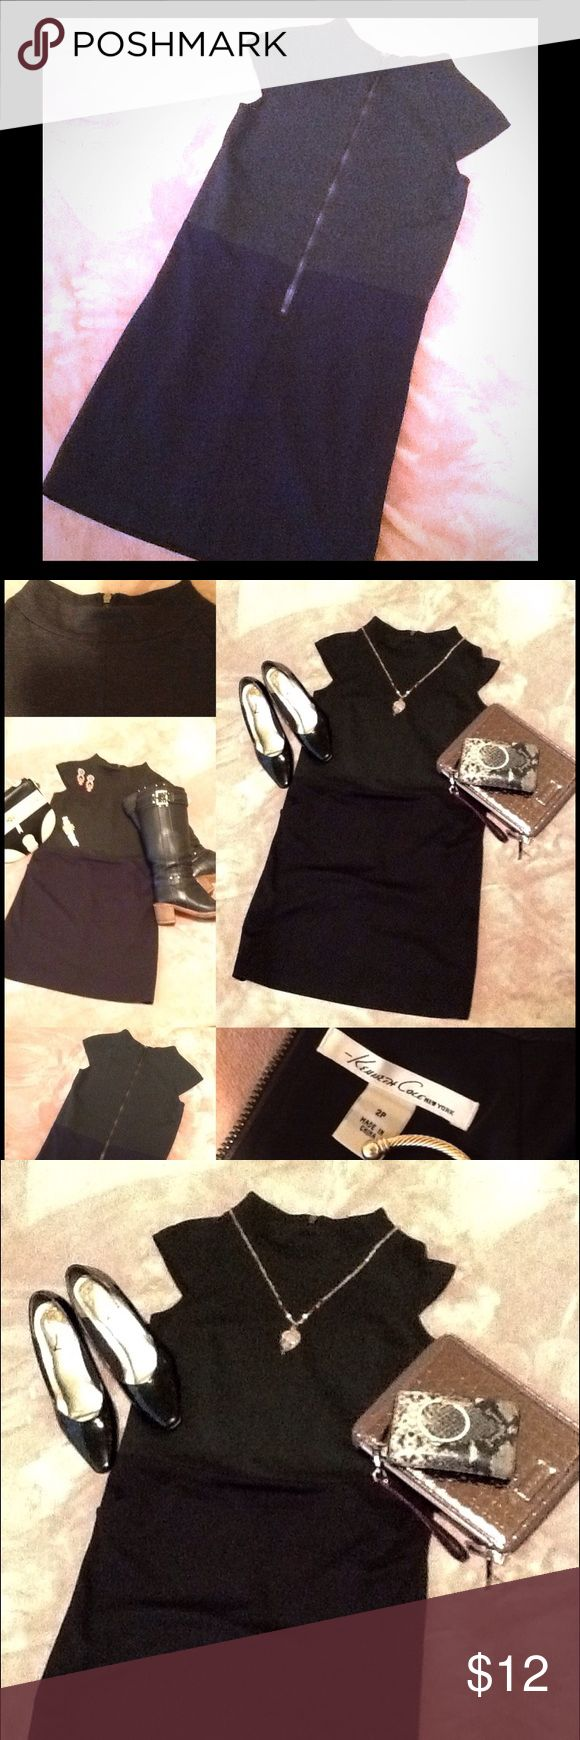 EUC KENNETH COLE EXPOSED ZIPPER CHARCOAL/BLACK Such a cute Kenneth Cole New York banded neckline, cap sleeve dress, with exposed zipper.  The bodice is charcoal gray, and the skirt is black.  Smooth double knit fabric.  EUC. Kenneth Cole New York Dresses